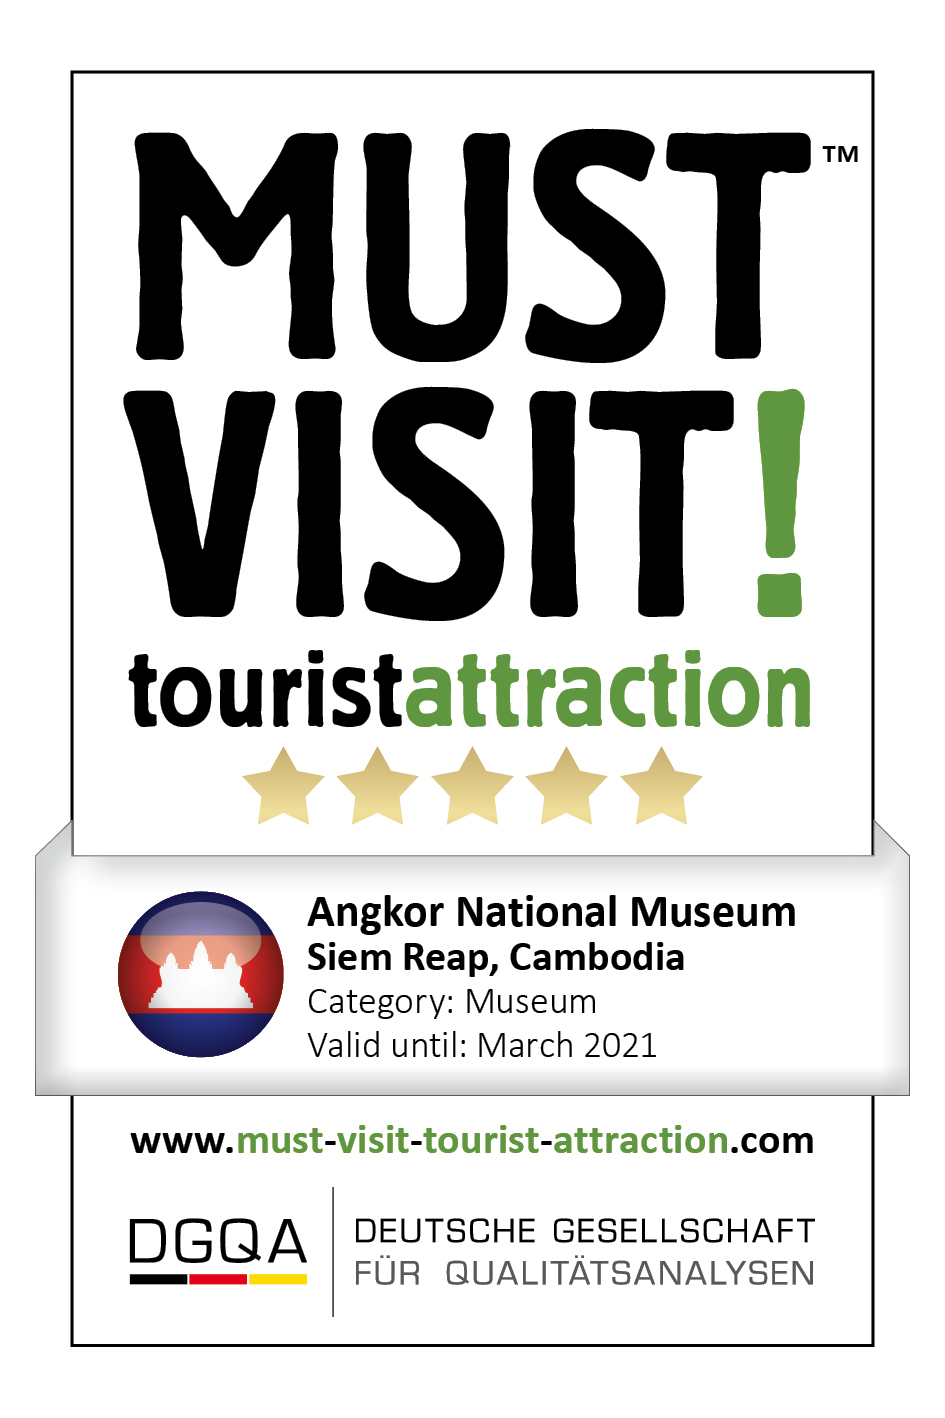 MUST VISIT! tourist attraction (dgqa) angkor national museum